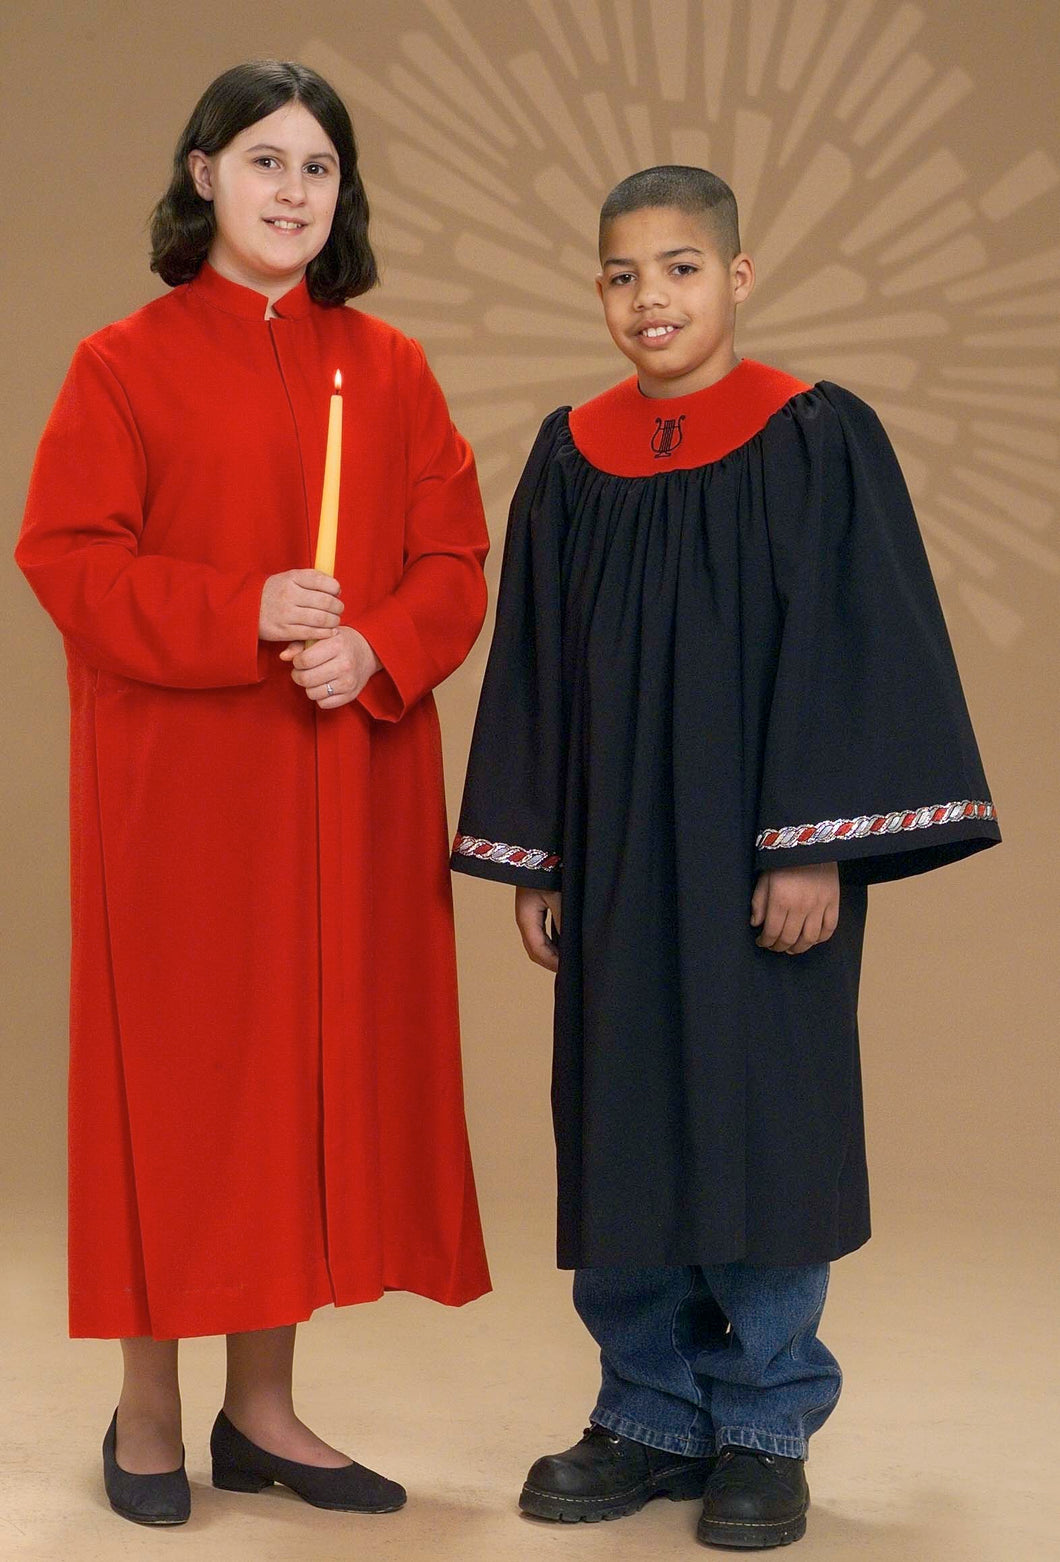 2231J 3100T Youth Choir Robes